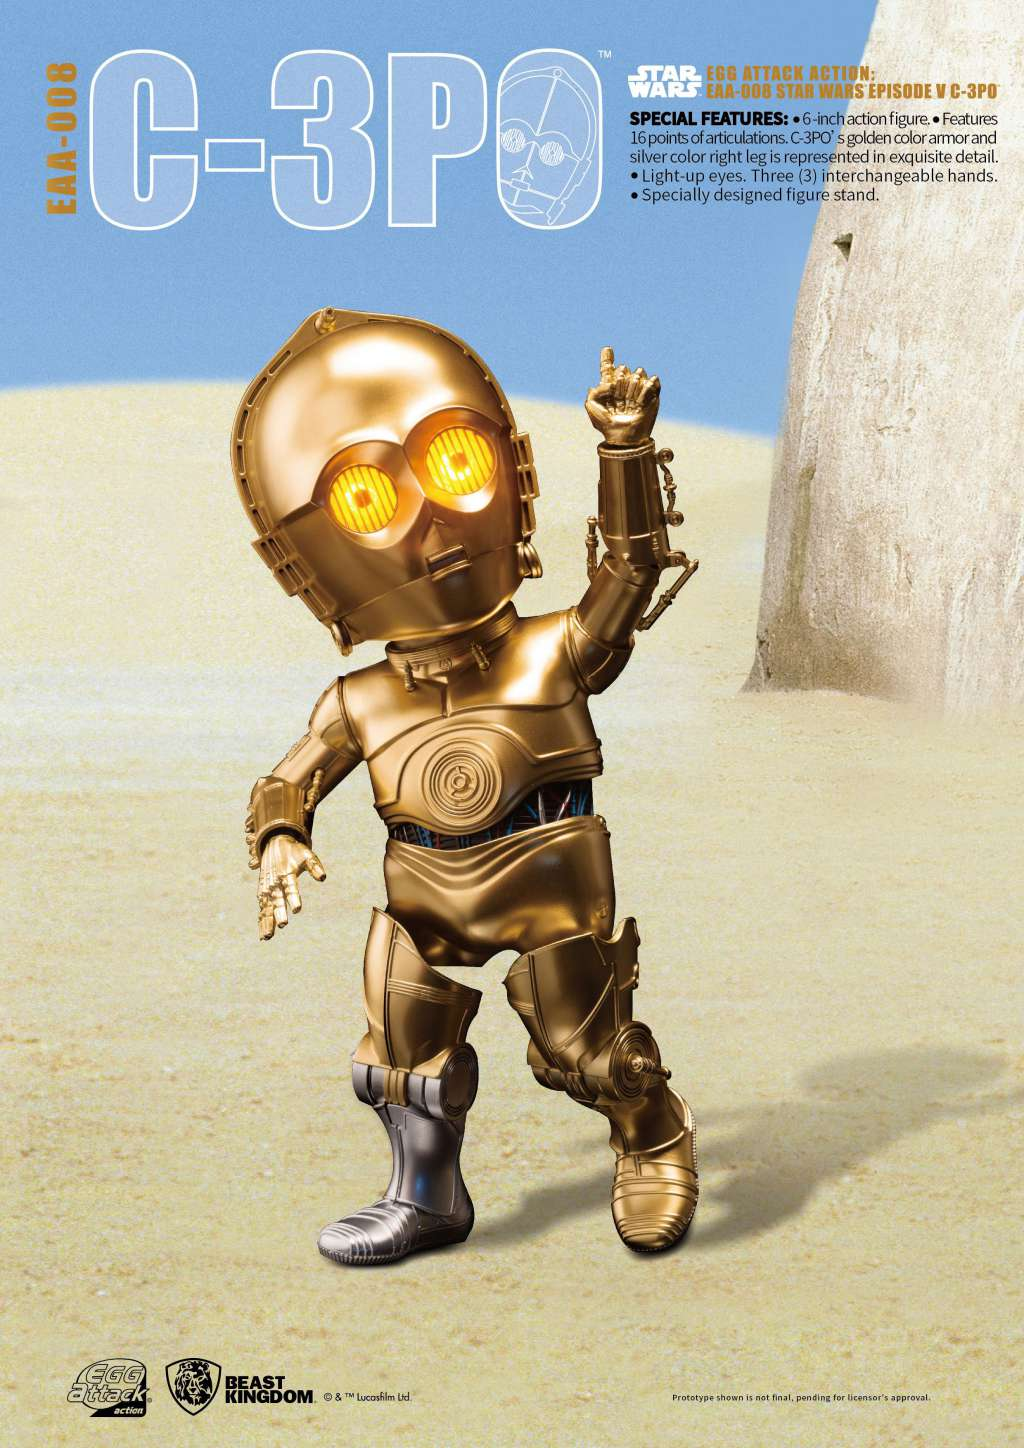 Star Wars Egg Attack Figura C-3PO Episodio V 02